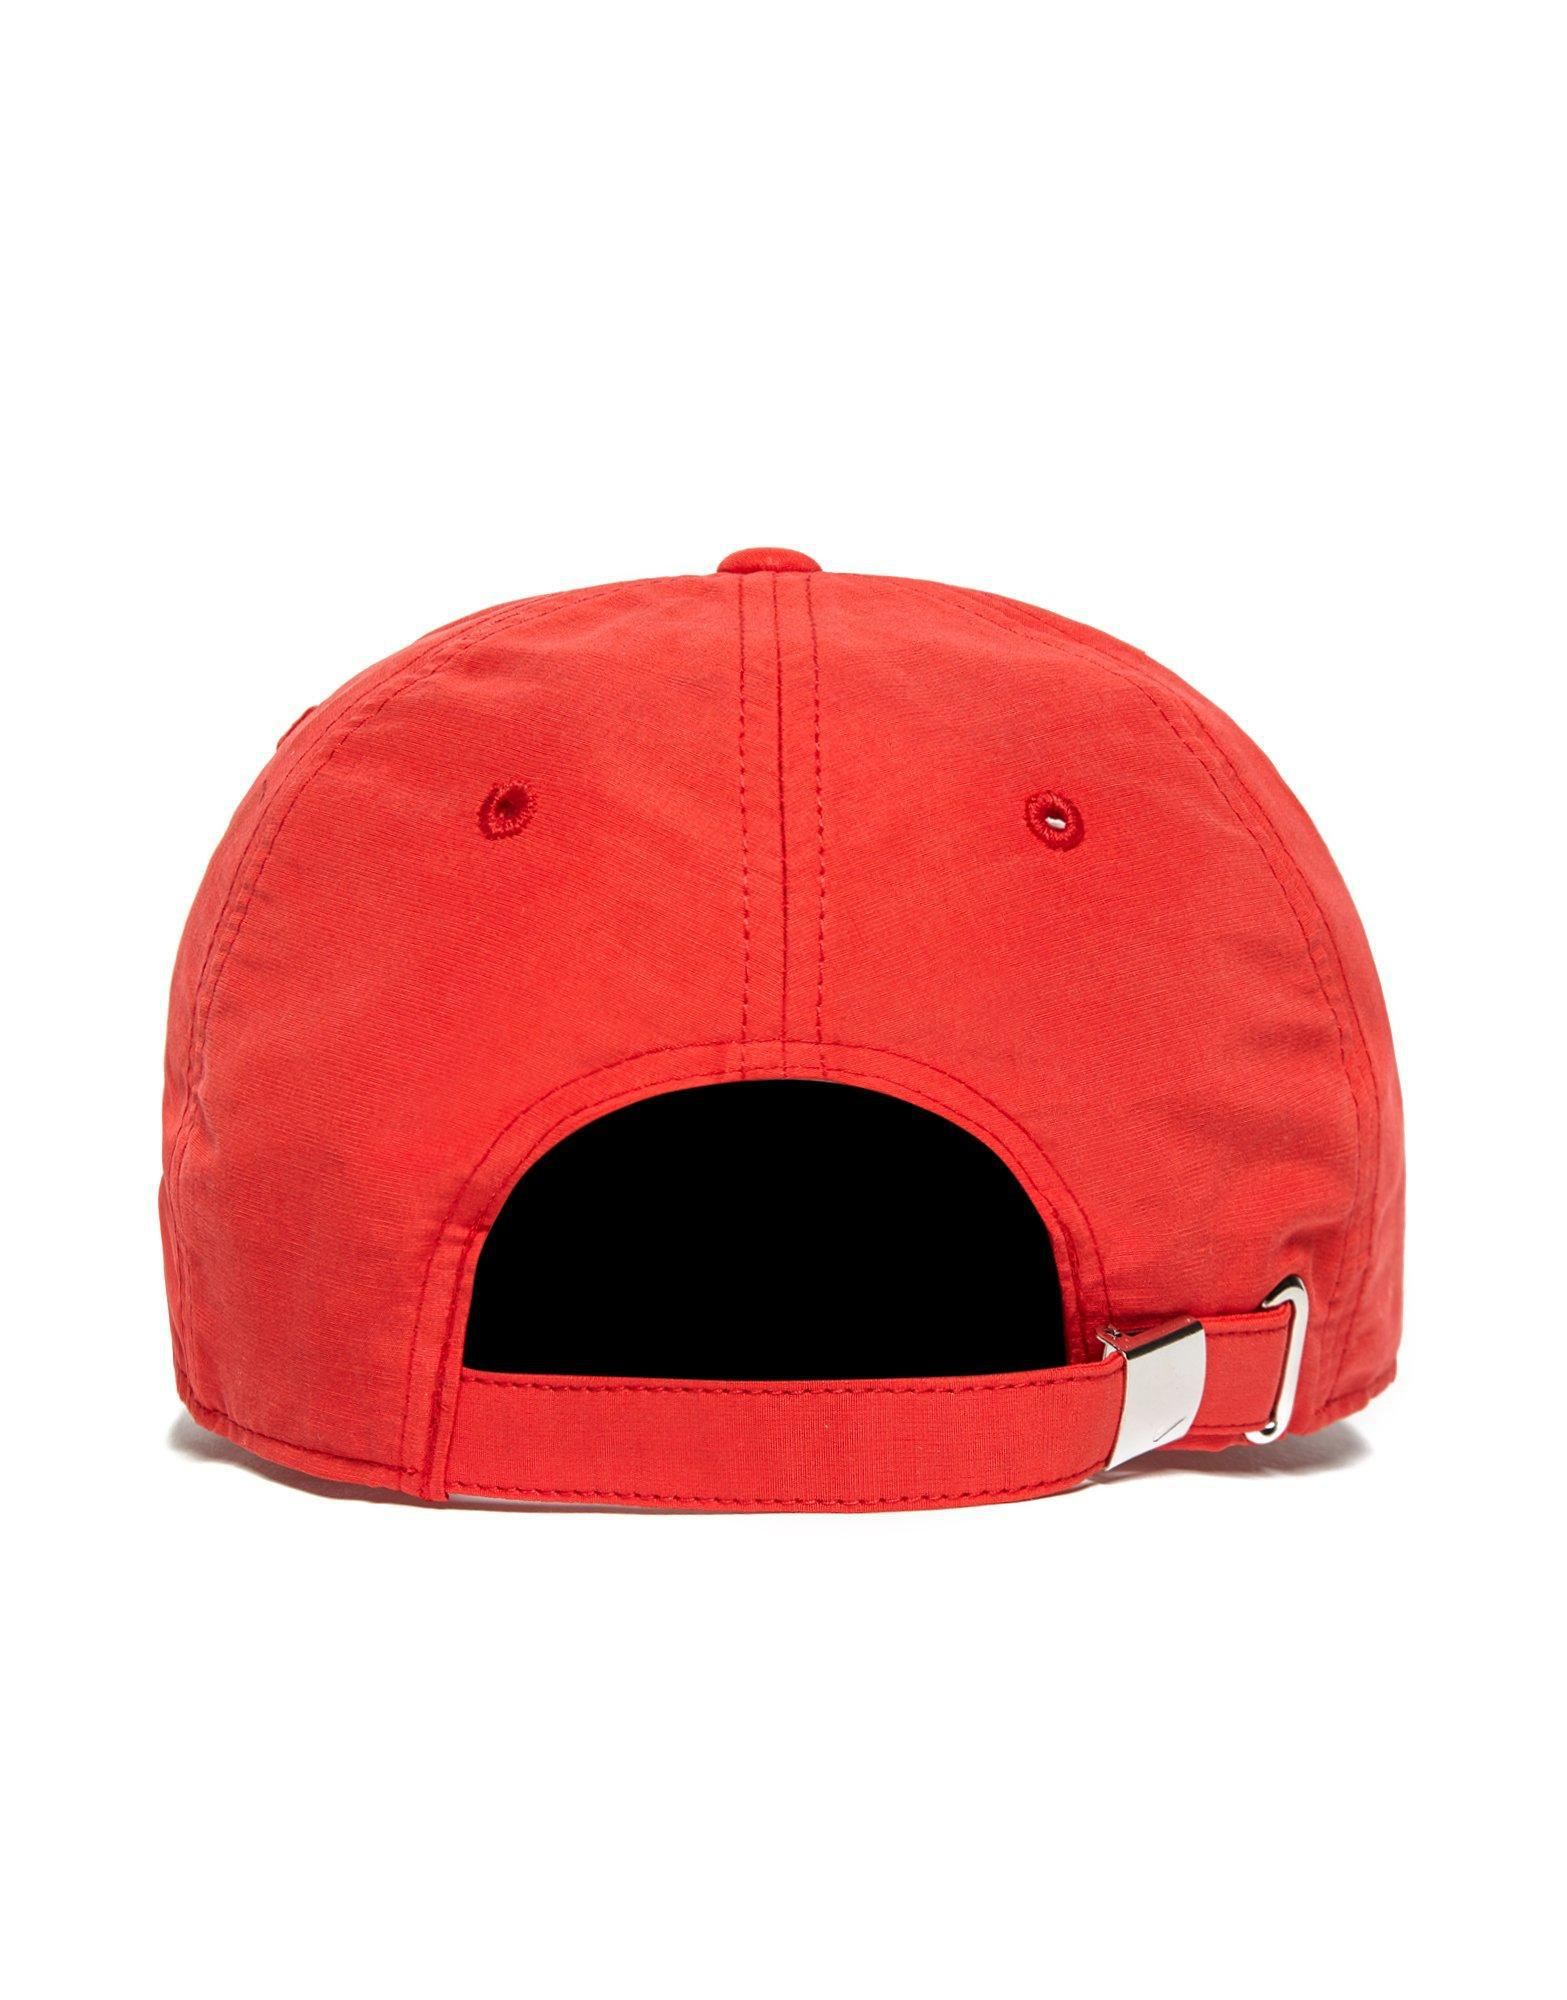 ... Black  the latest 89420 31615 Lyst - Nike Side Swoosh Cap in Red for Men  ... da7a43ccbaed